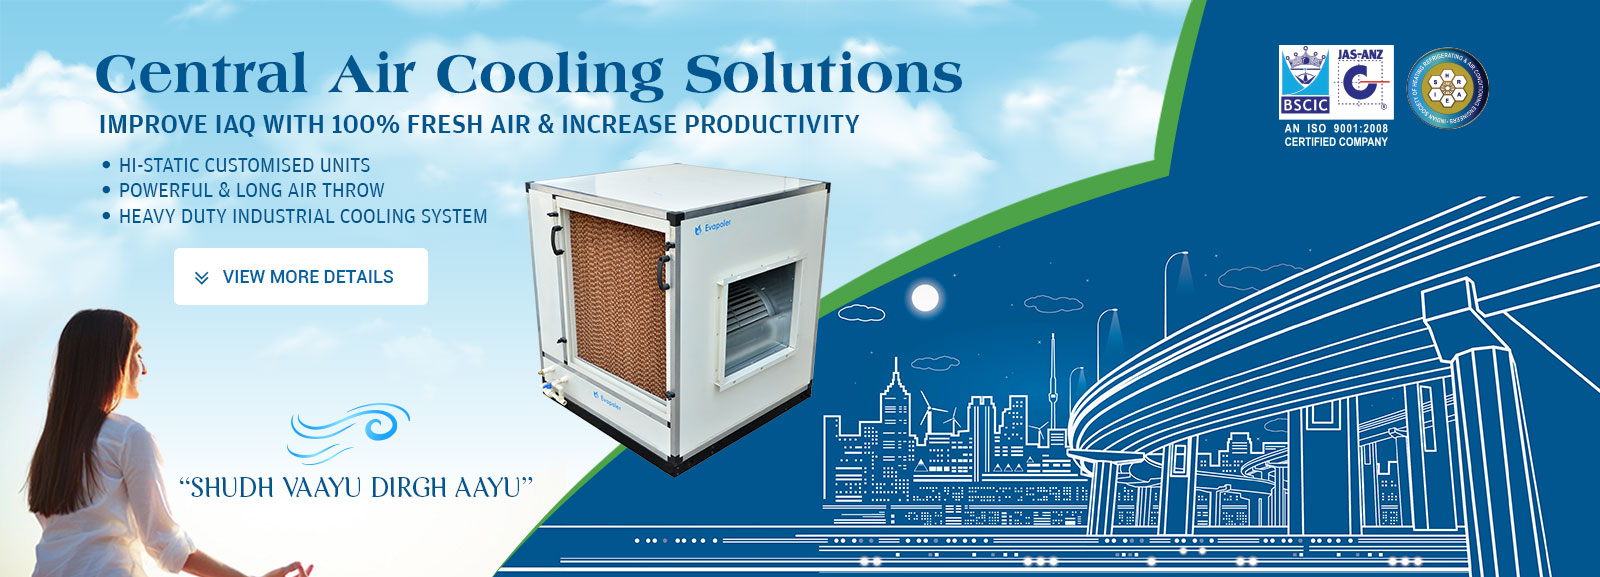 central air cooling solutions